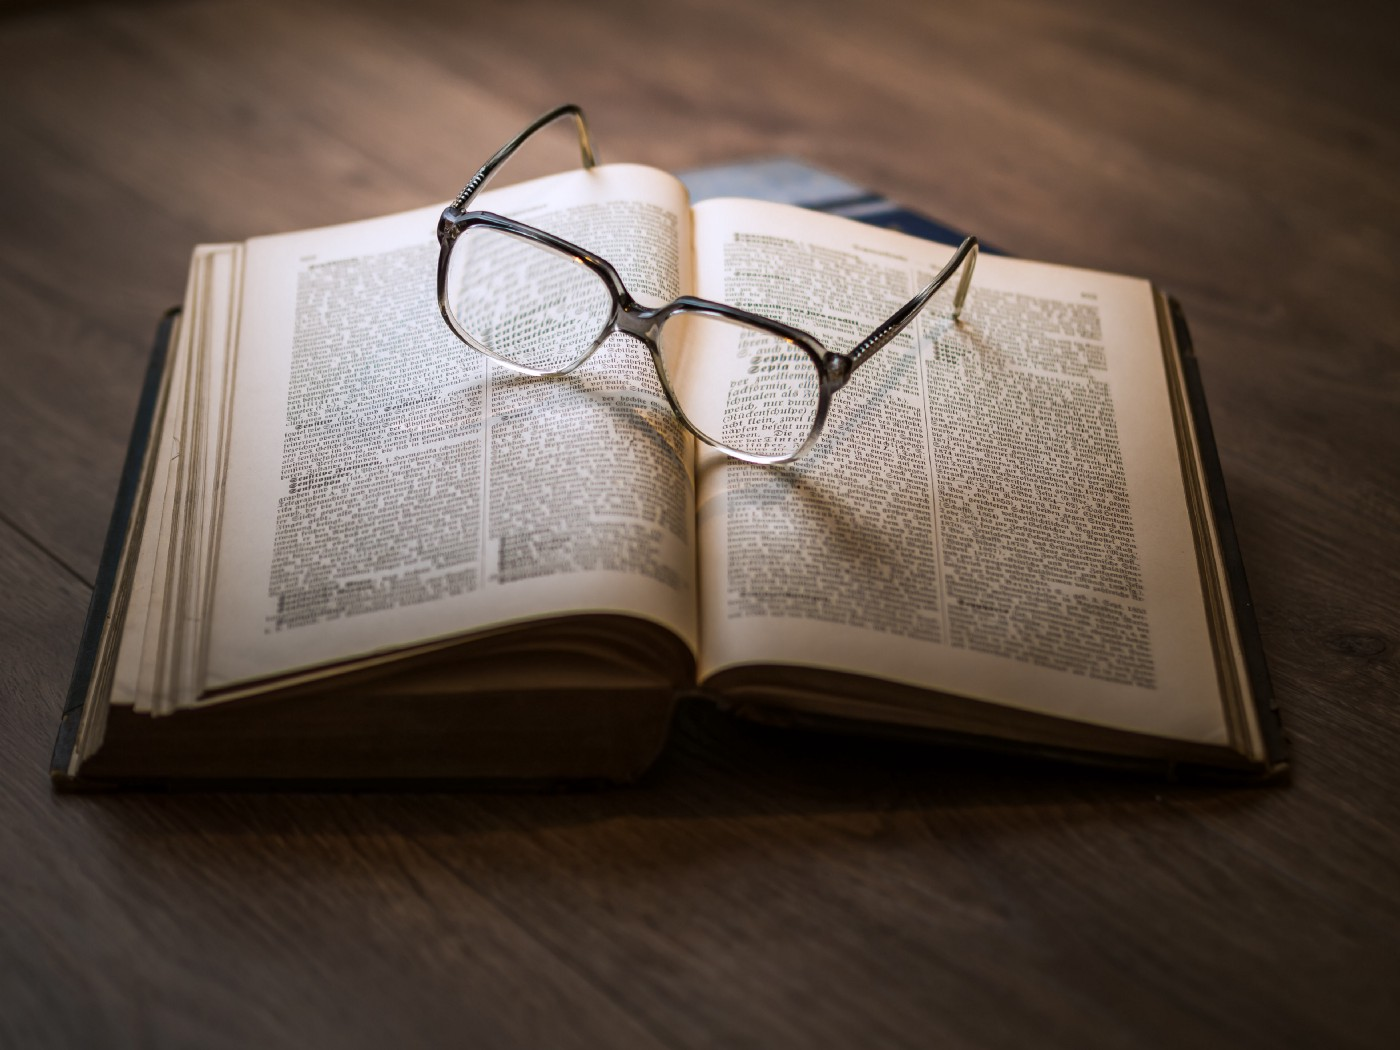 A book is opened to a random page, with a pair of glasses on top of it.